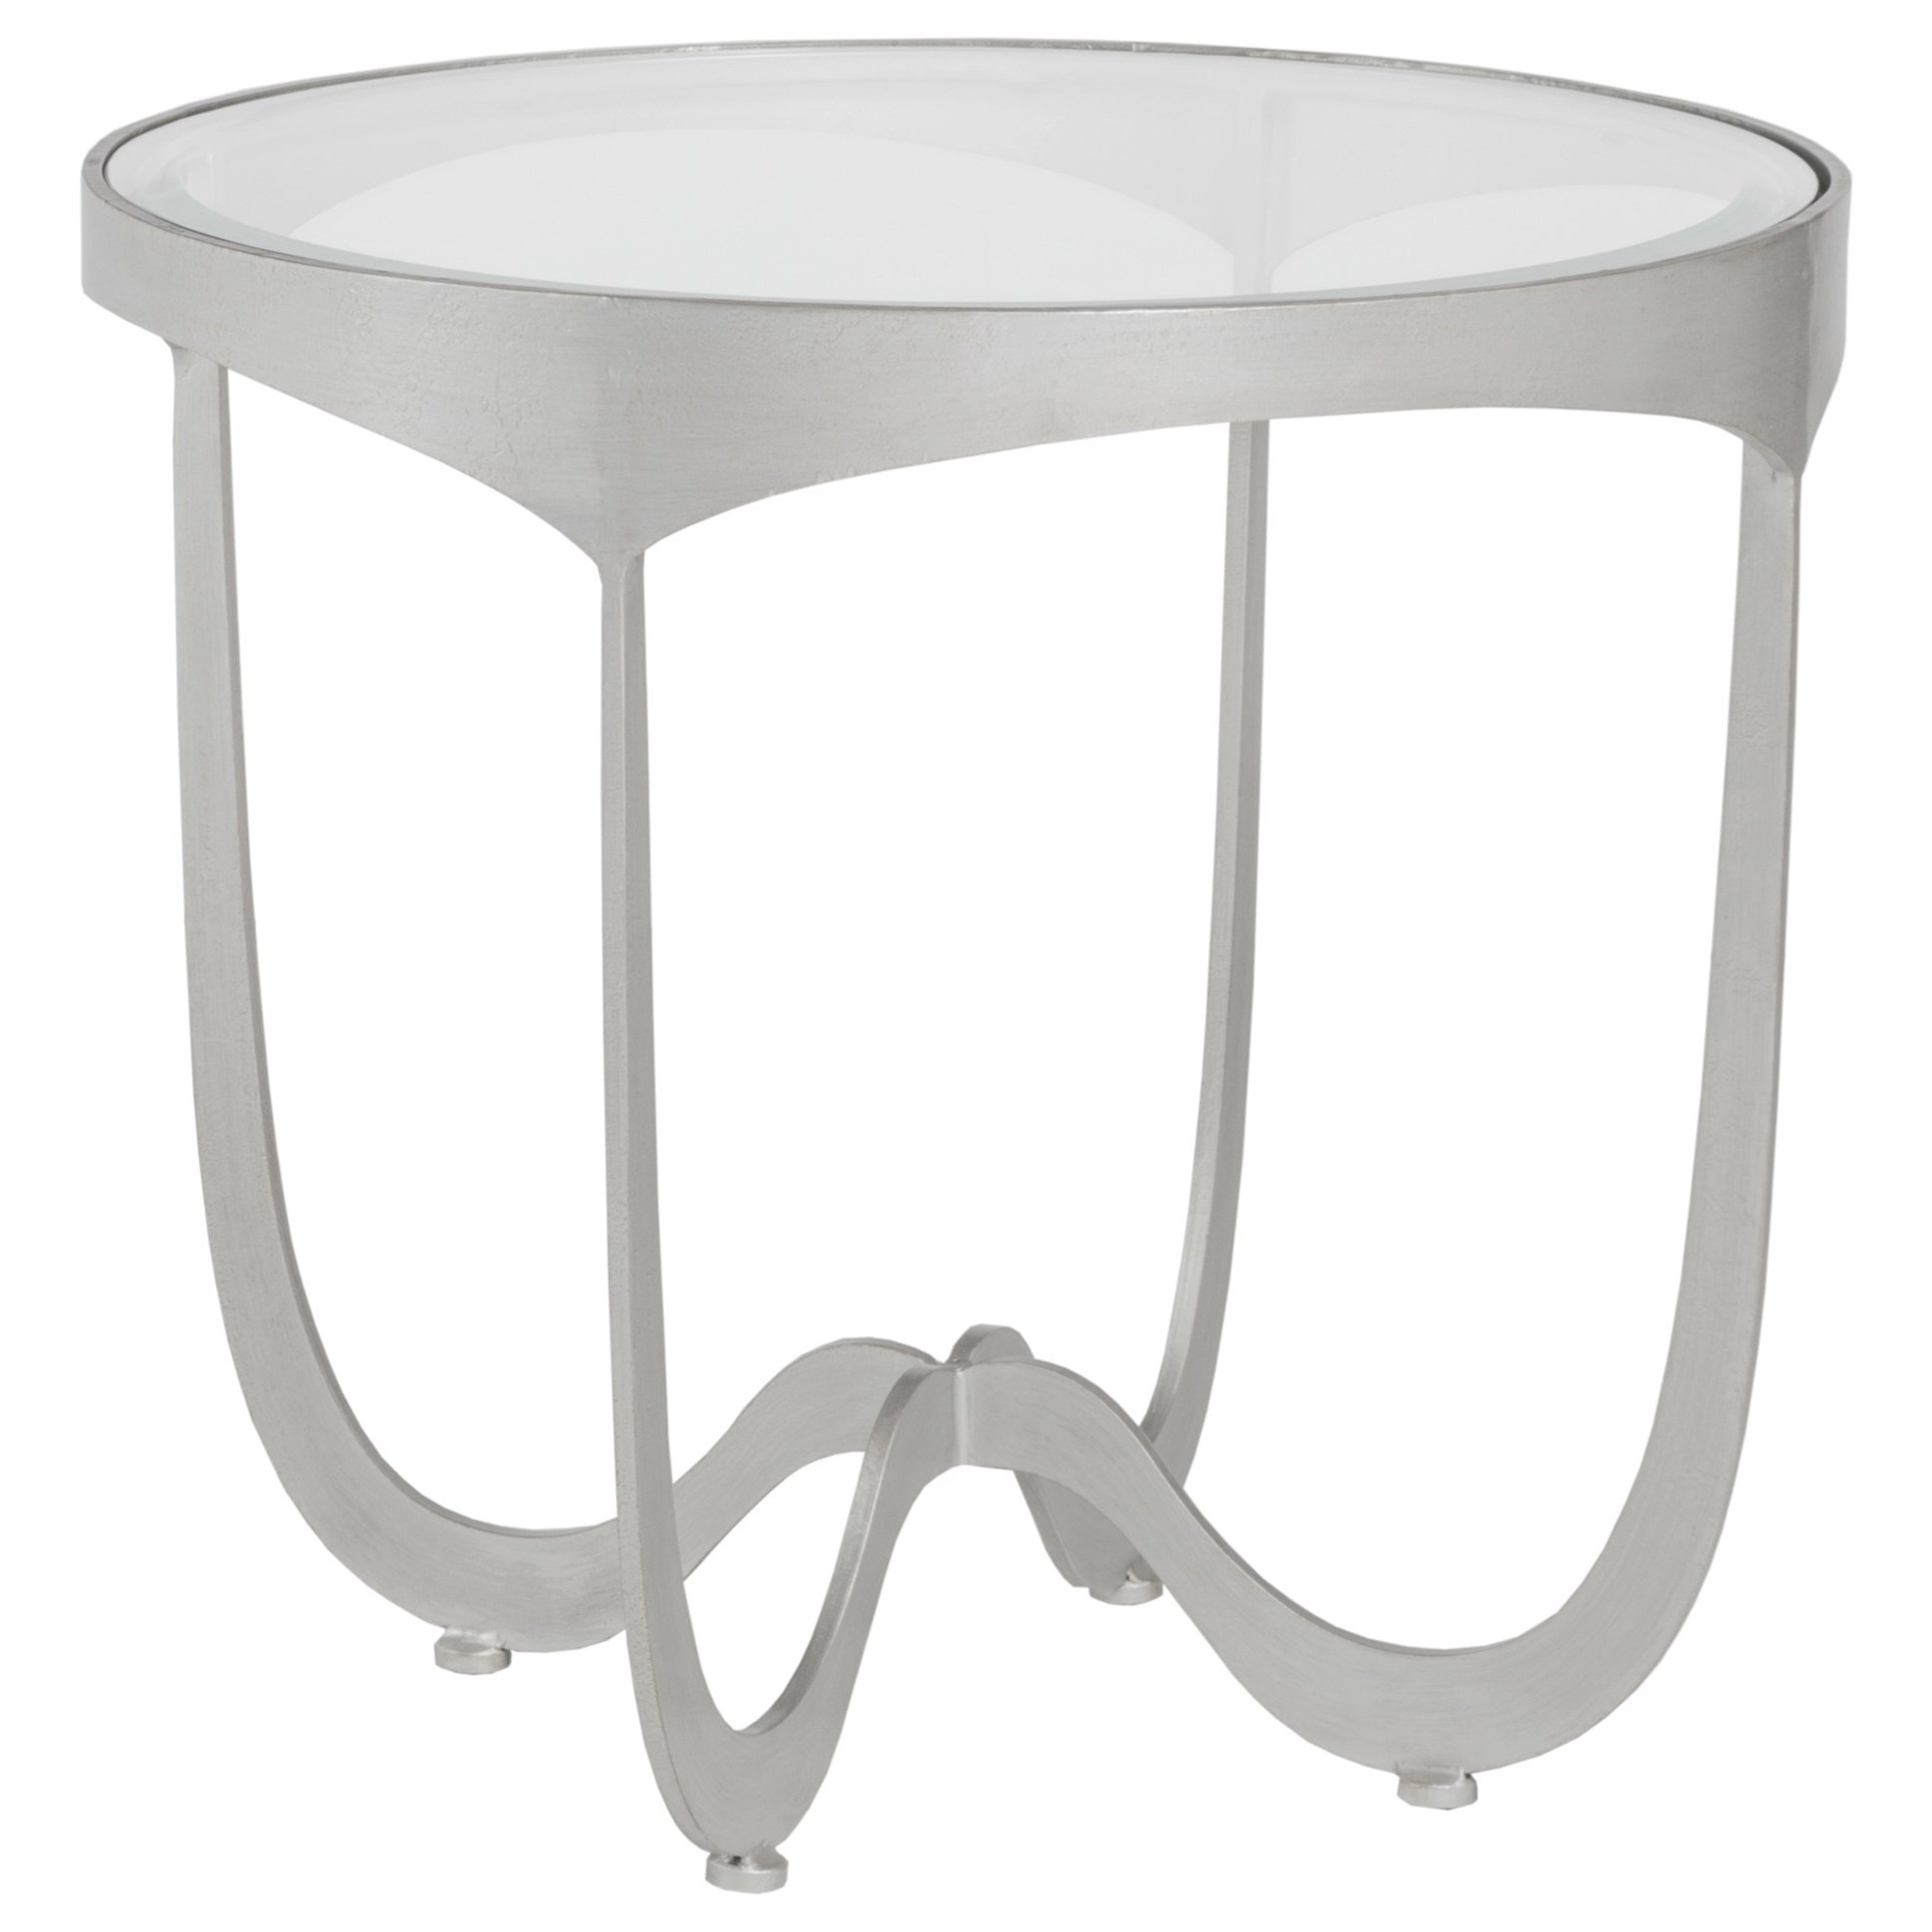 Metal Designs Sophie Round End Table by Artistica at Baer's Furniture